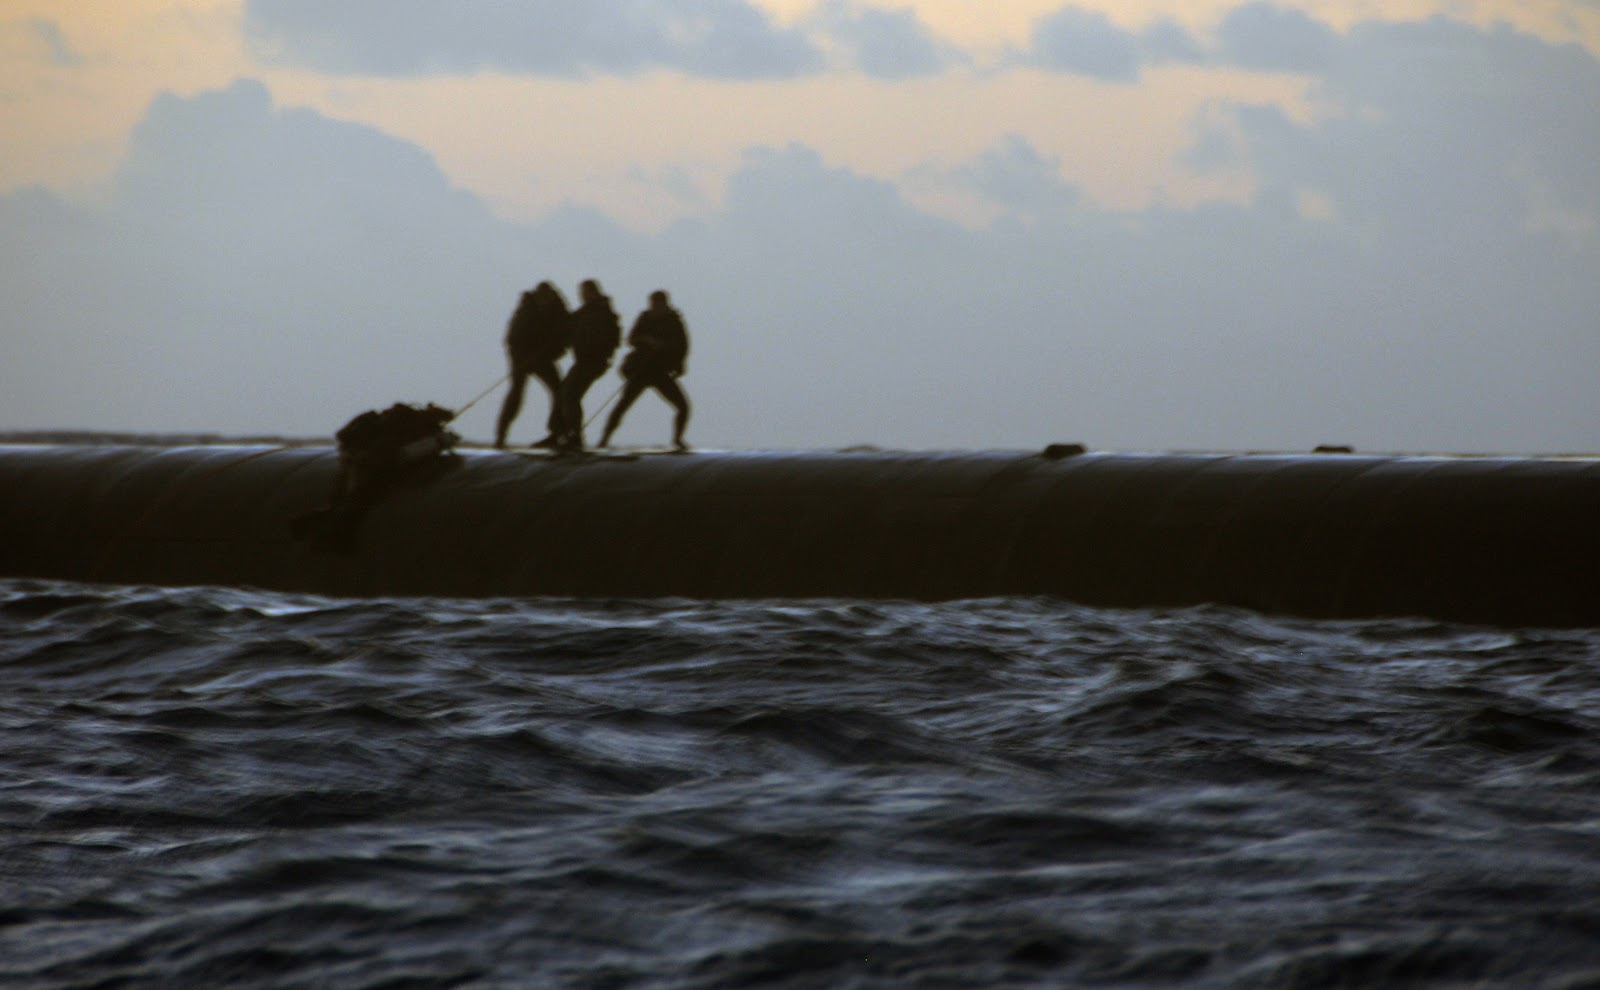 Tactical gear and military clothing news all aboard uss michigan